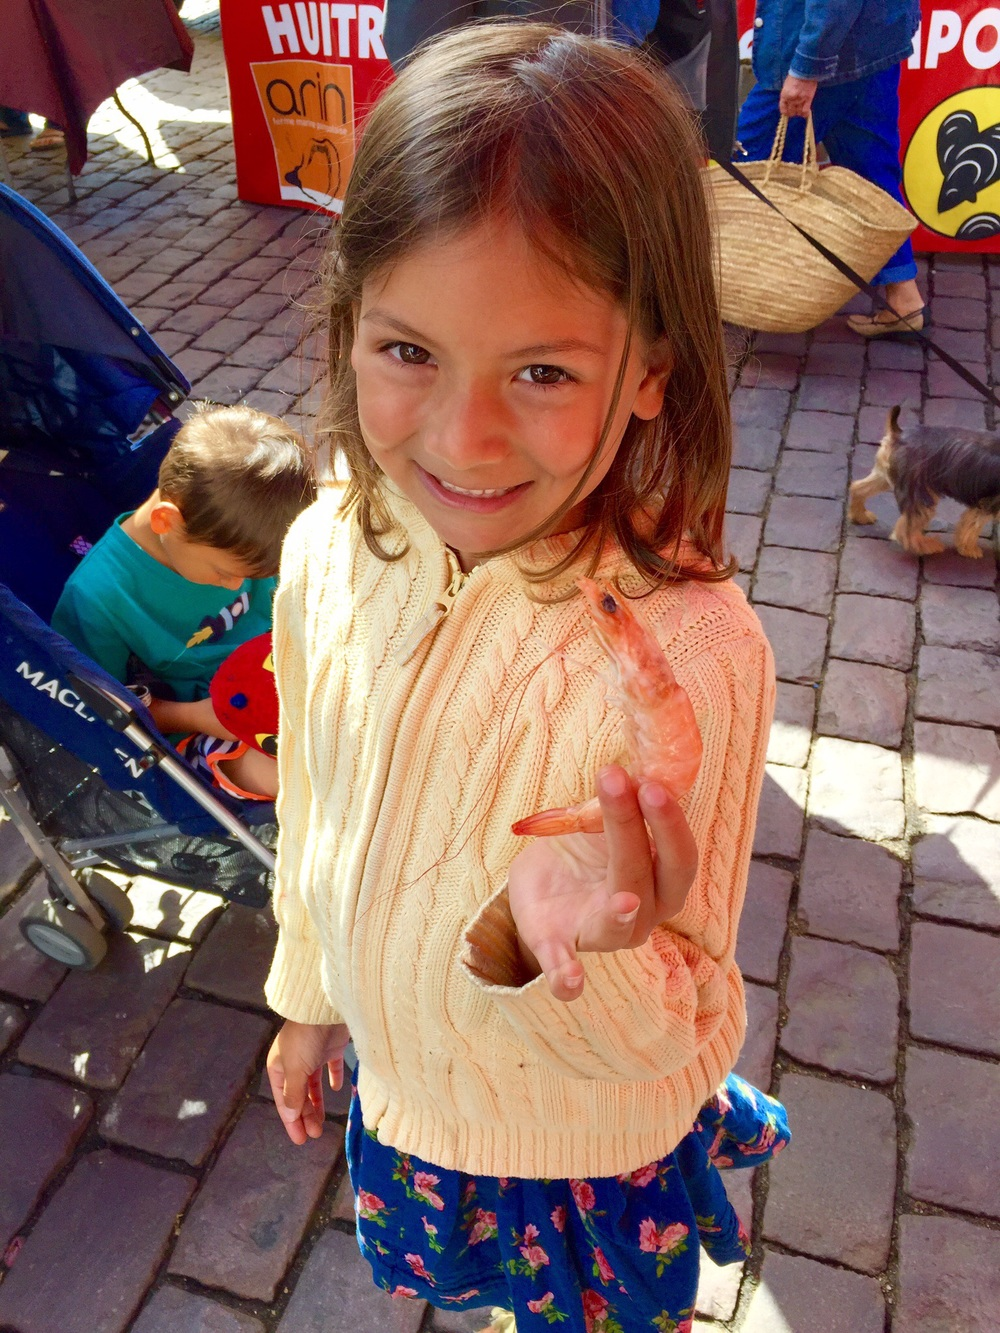 A seafood seller at the market gave my daughter a  crevette --it was delicious! (She didn't want to eat it, so I did.)